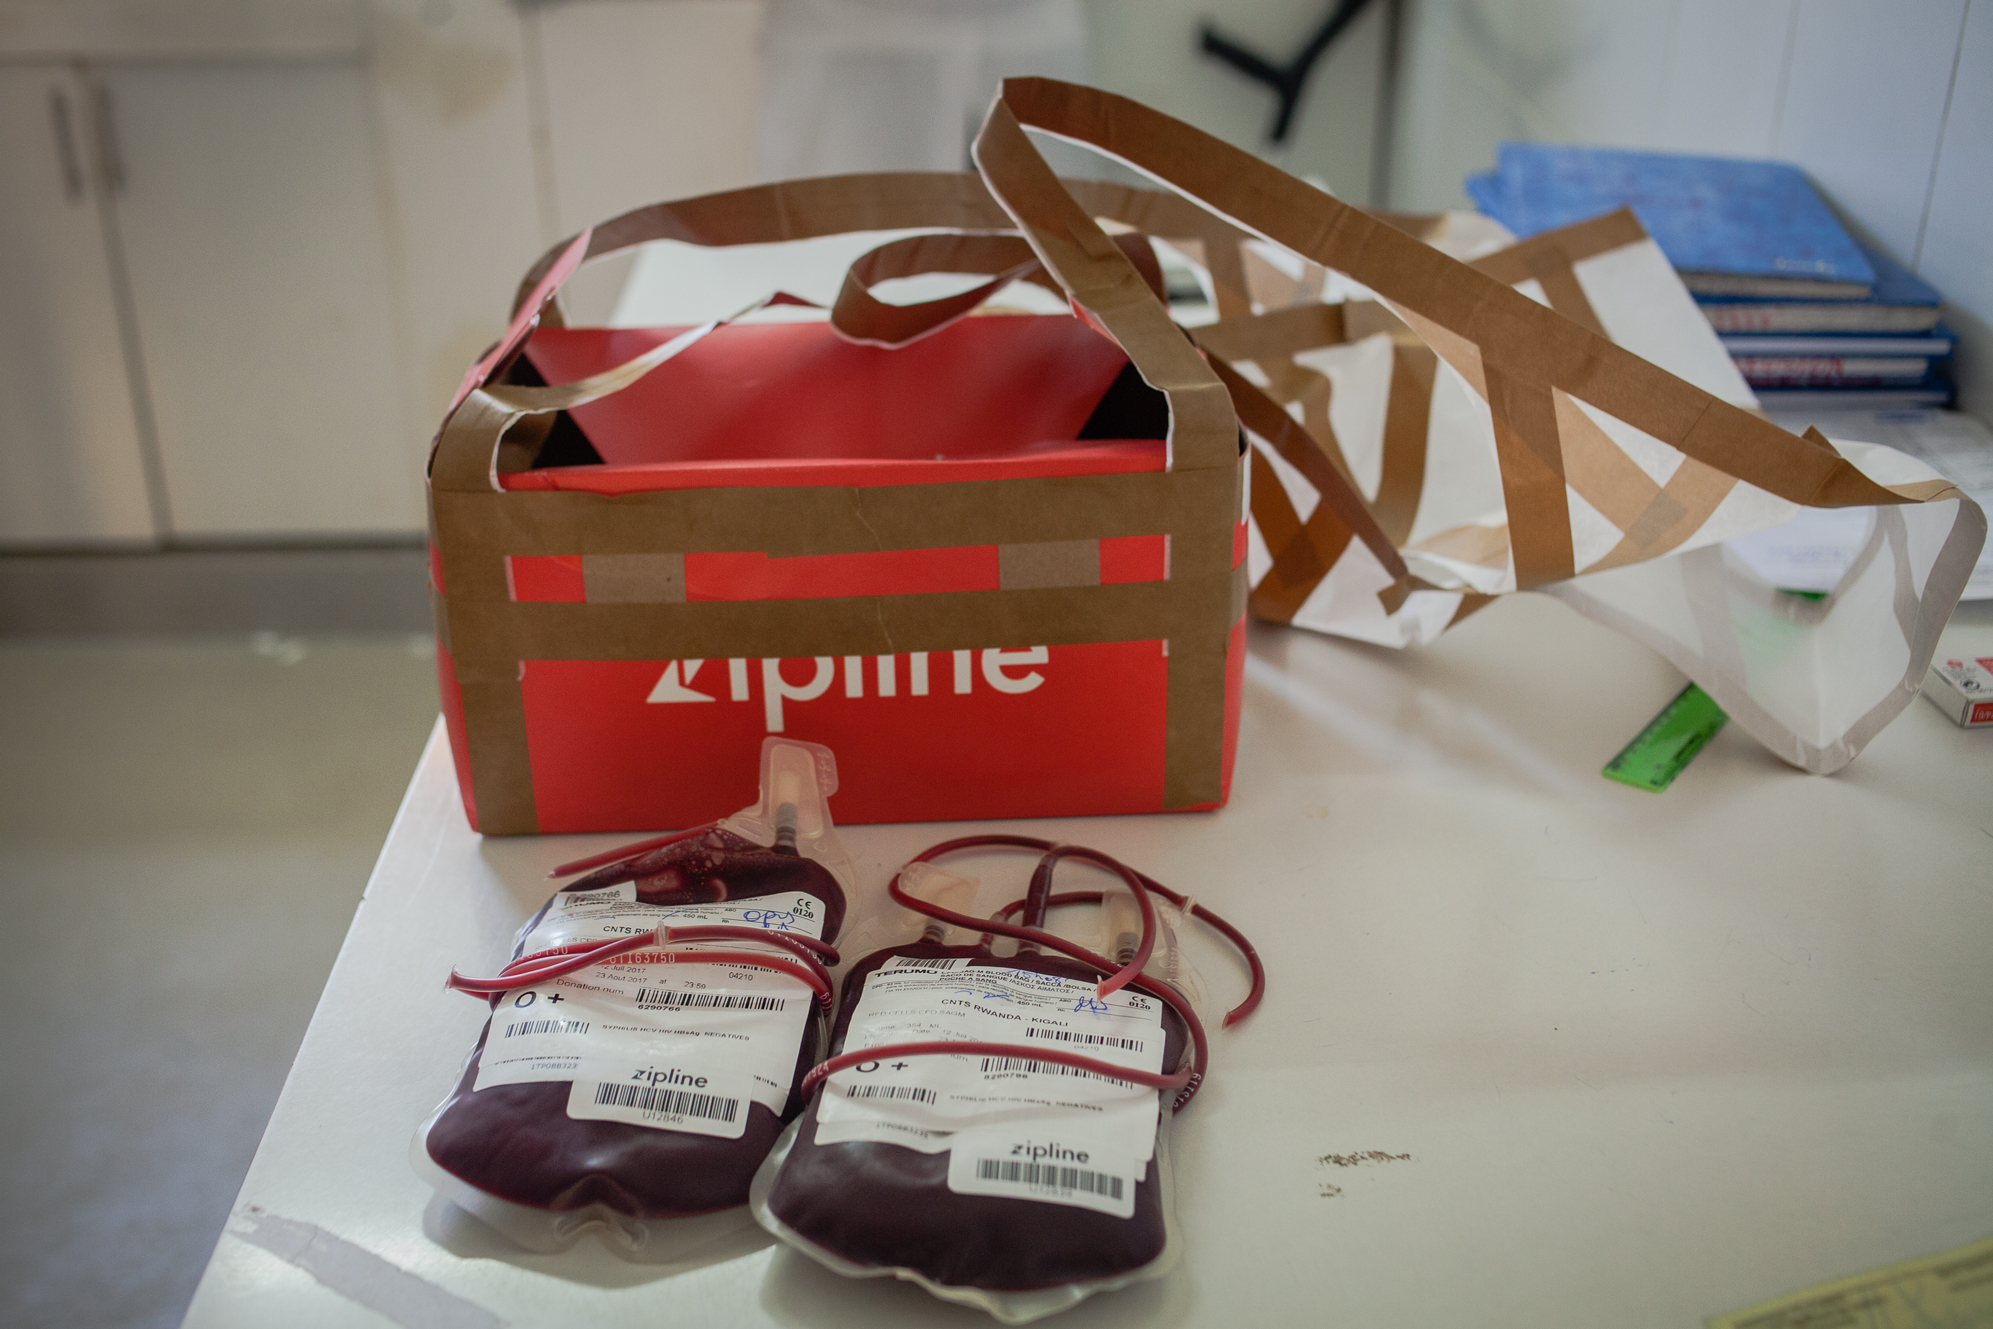 The delivered blood from Zipline in Kabgayi Hospital laboratory on July 21, 2017.